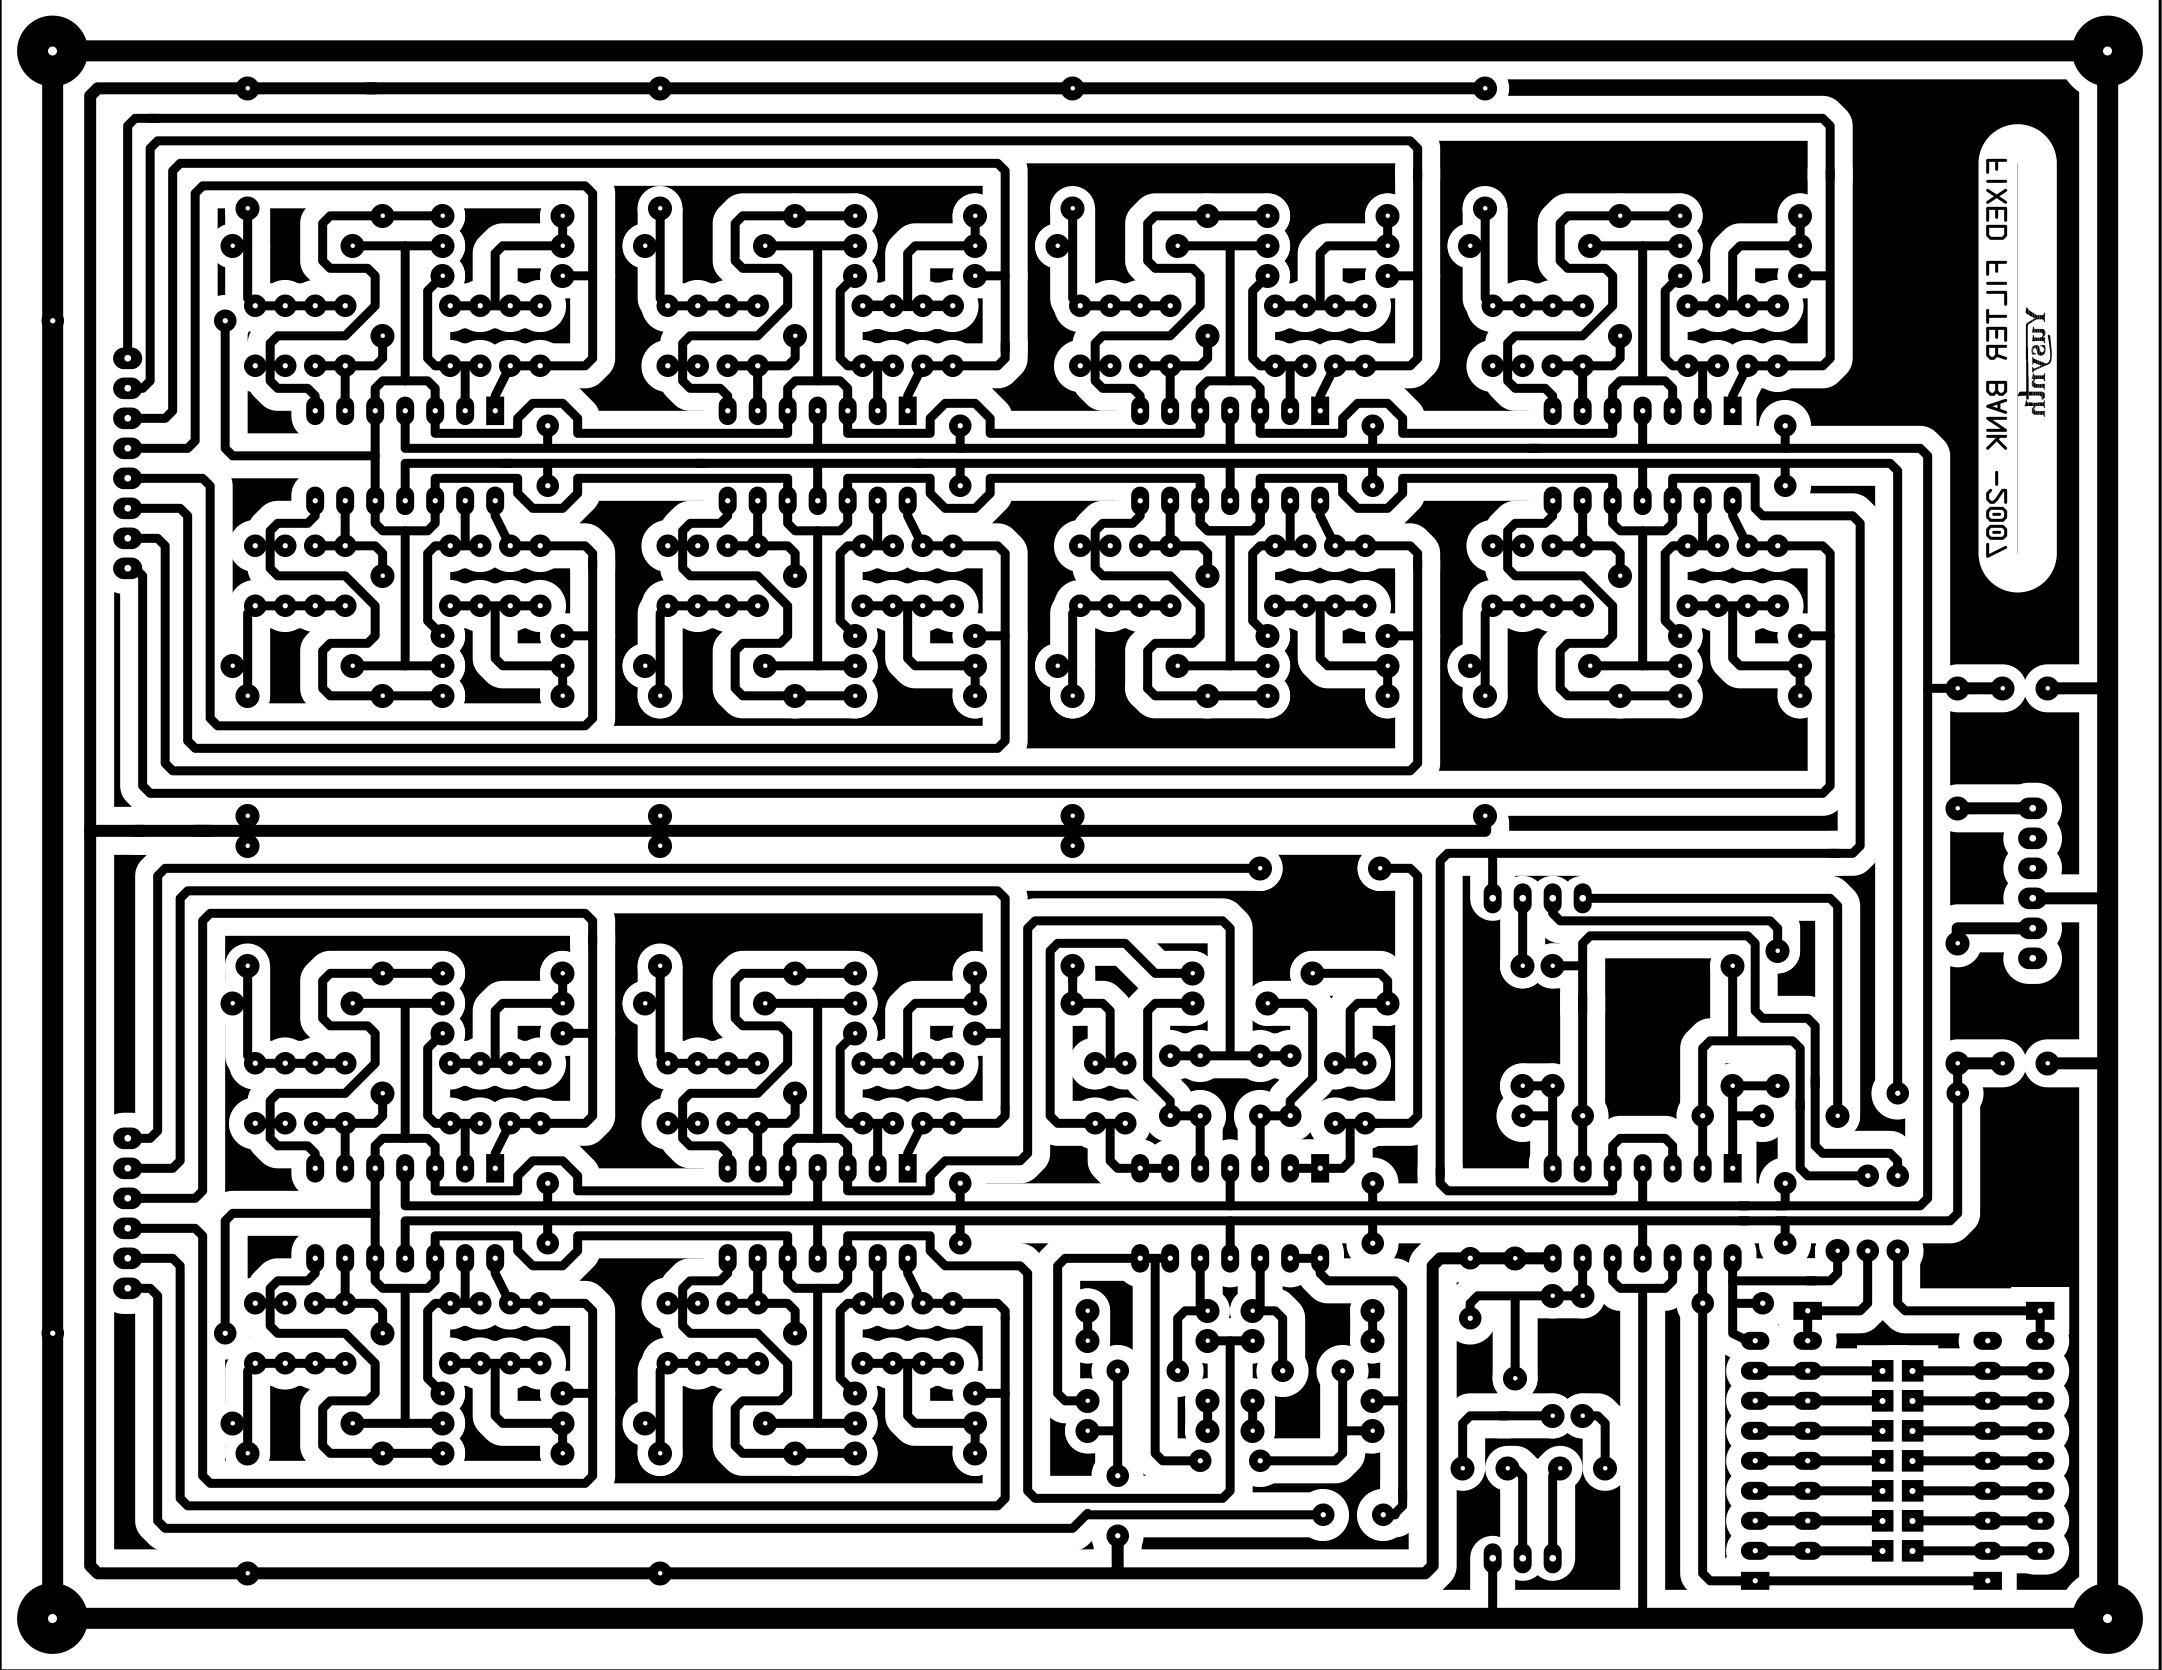 Filter Bank Highpass Hp Active For 1khz Circuit Diagram Pcb Design